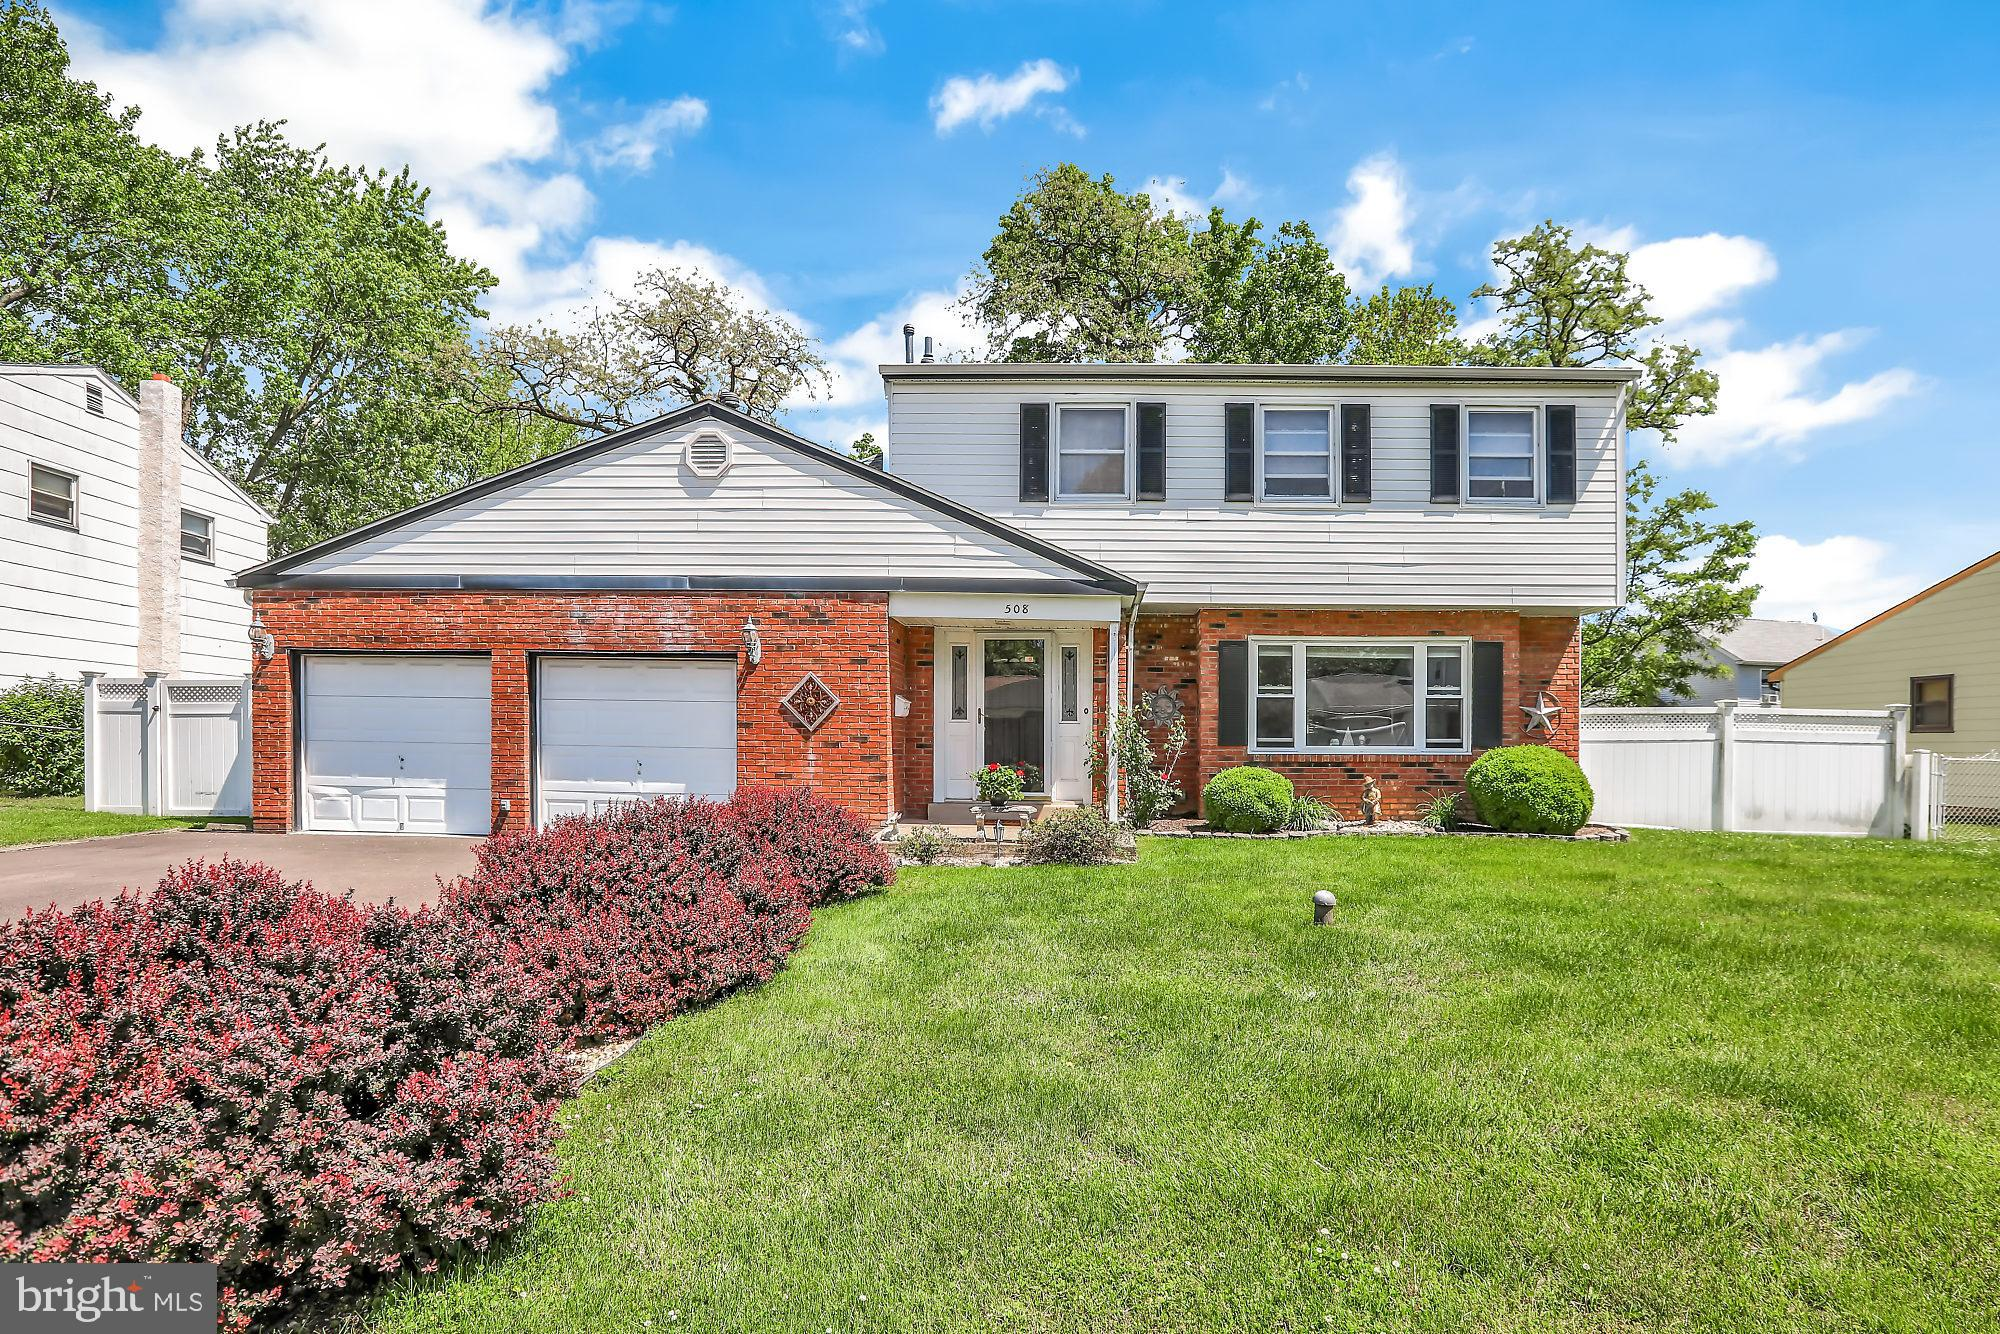 508 CASSINGHAM ROAD, FAIRLESS HILLS, PA 19030